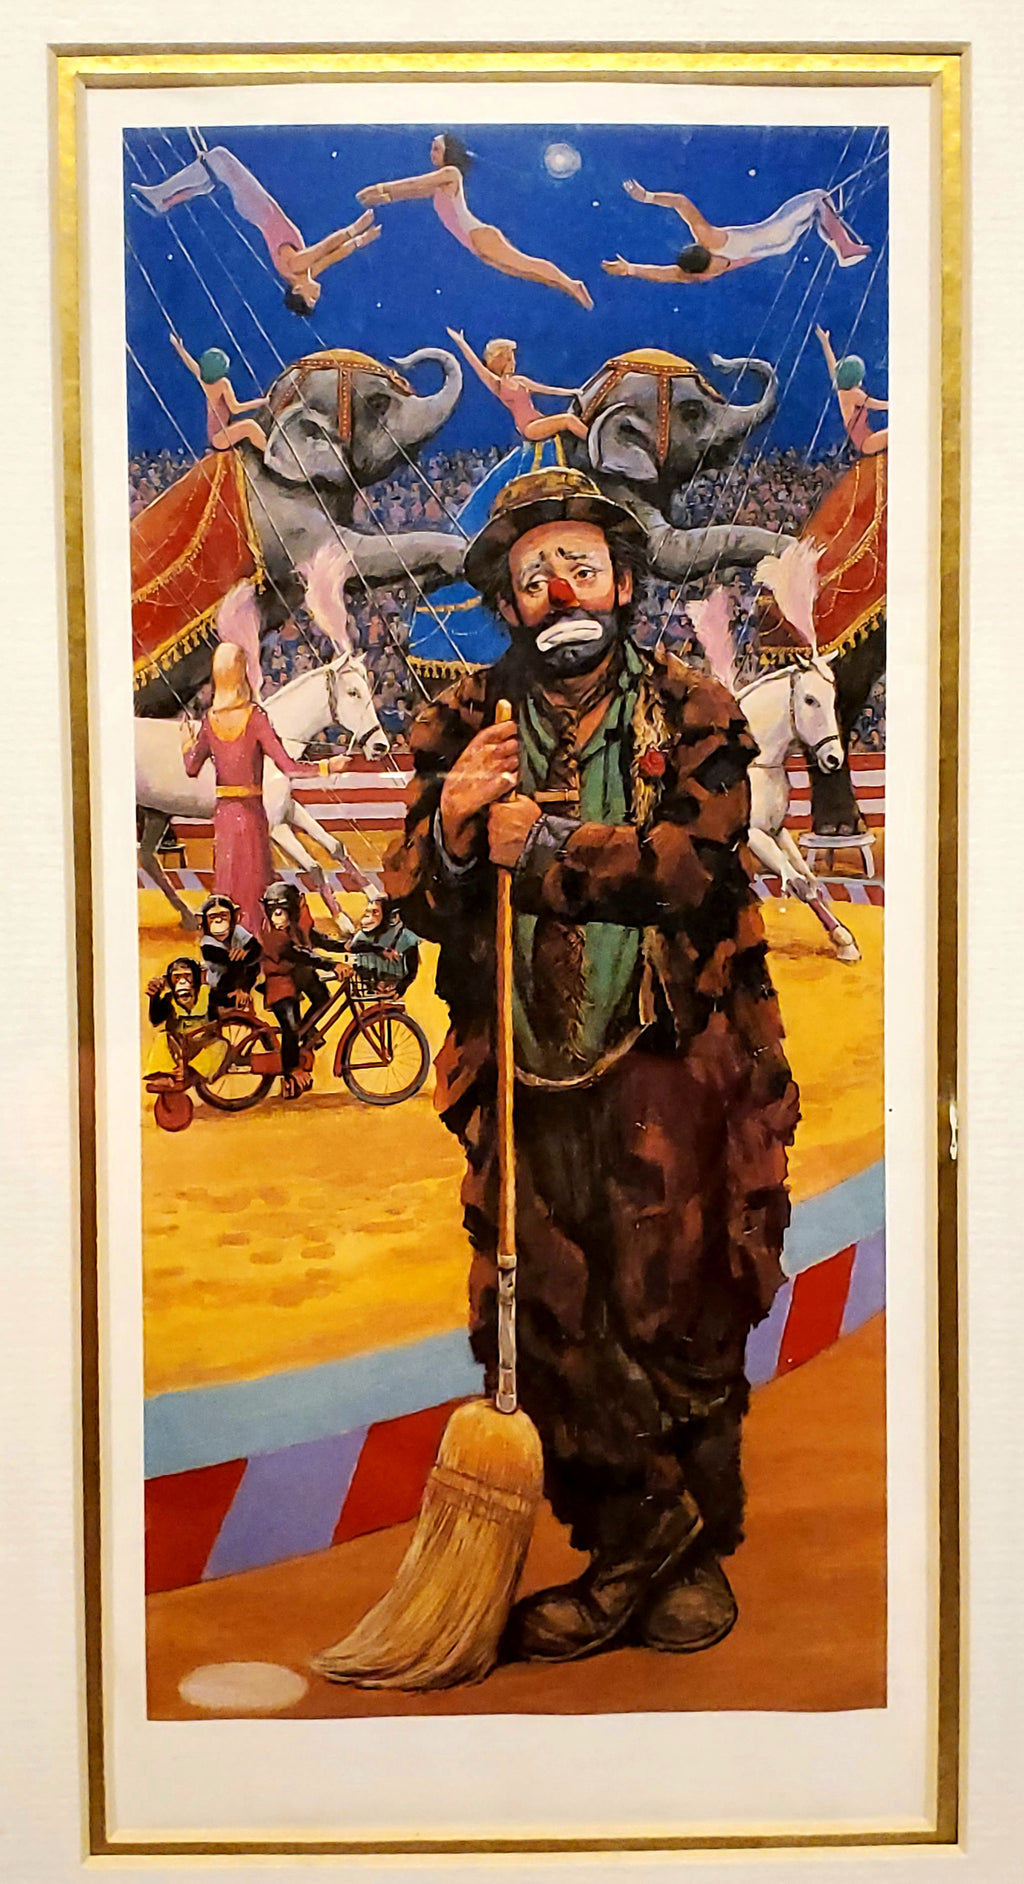 Emmett Kelly Autographed Lithograph - MiscellaneousByDawn